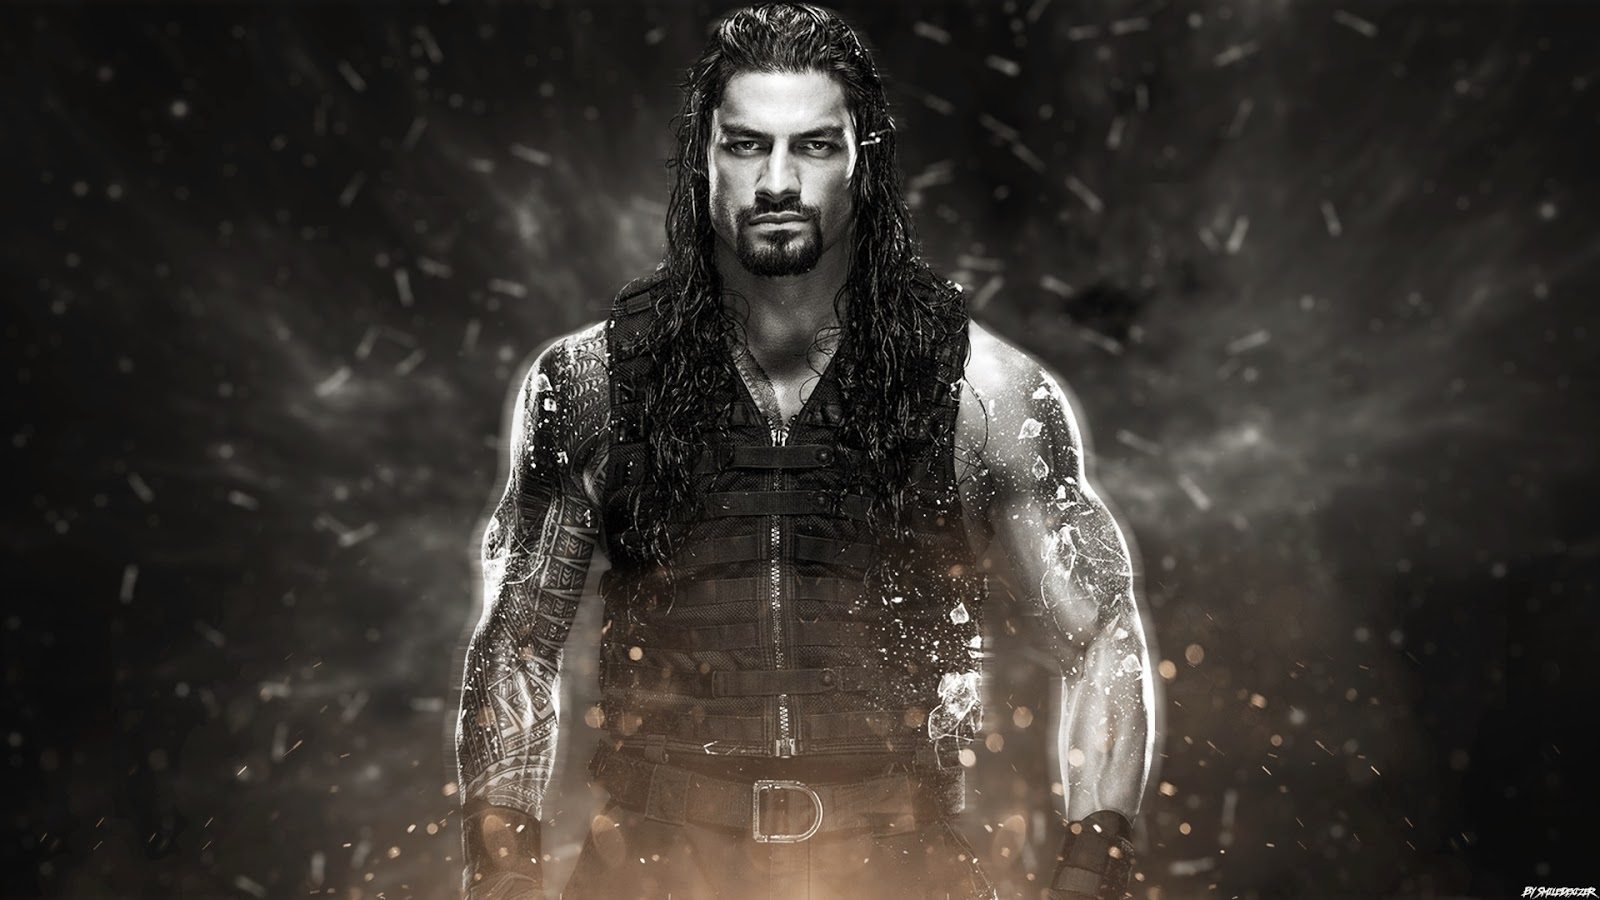 roman reigns hd wallpaper - 14 - wwe roman reigns wallpapers